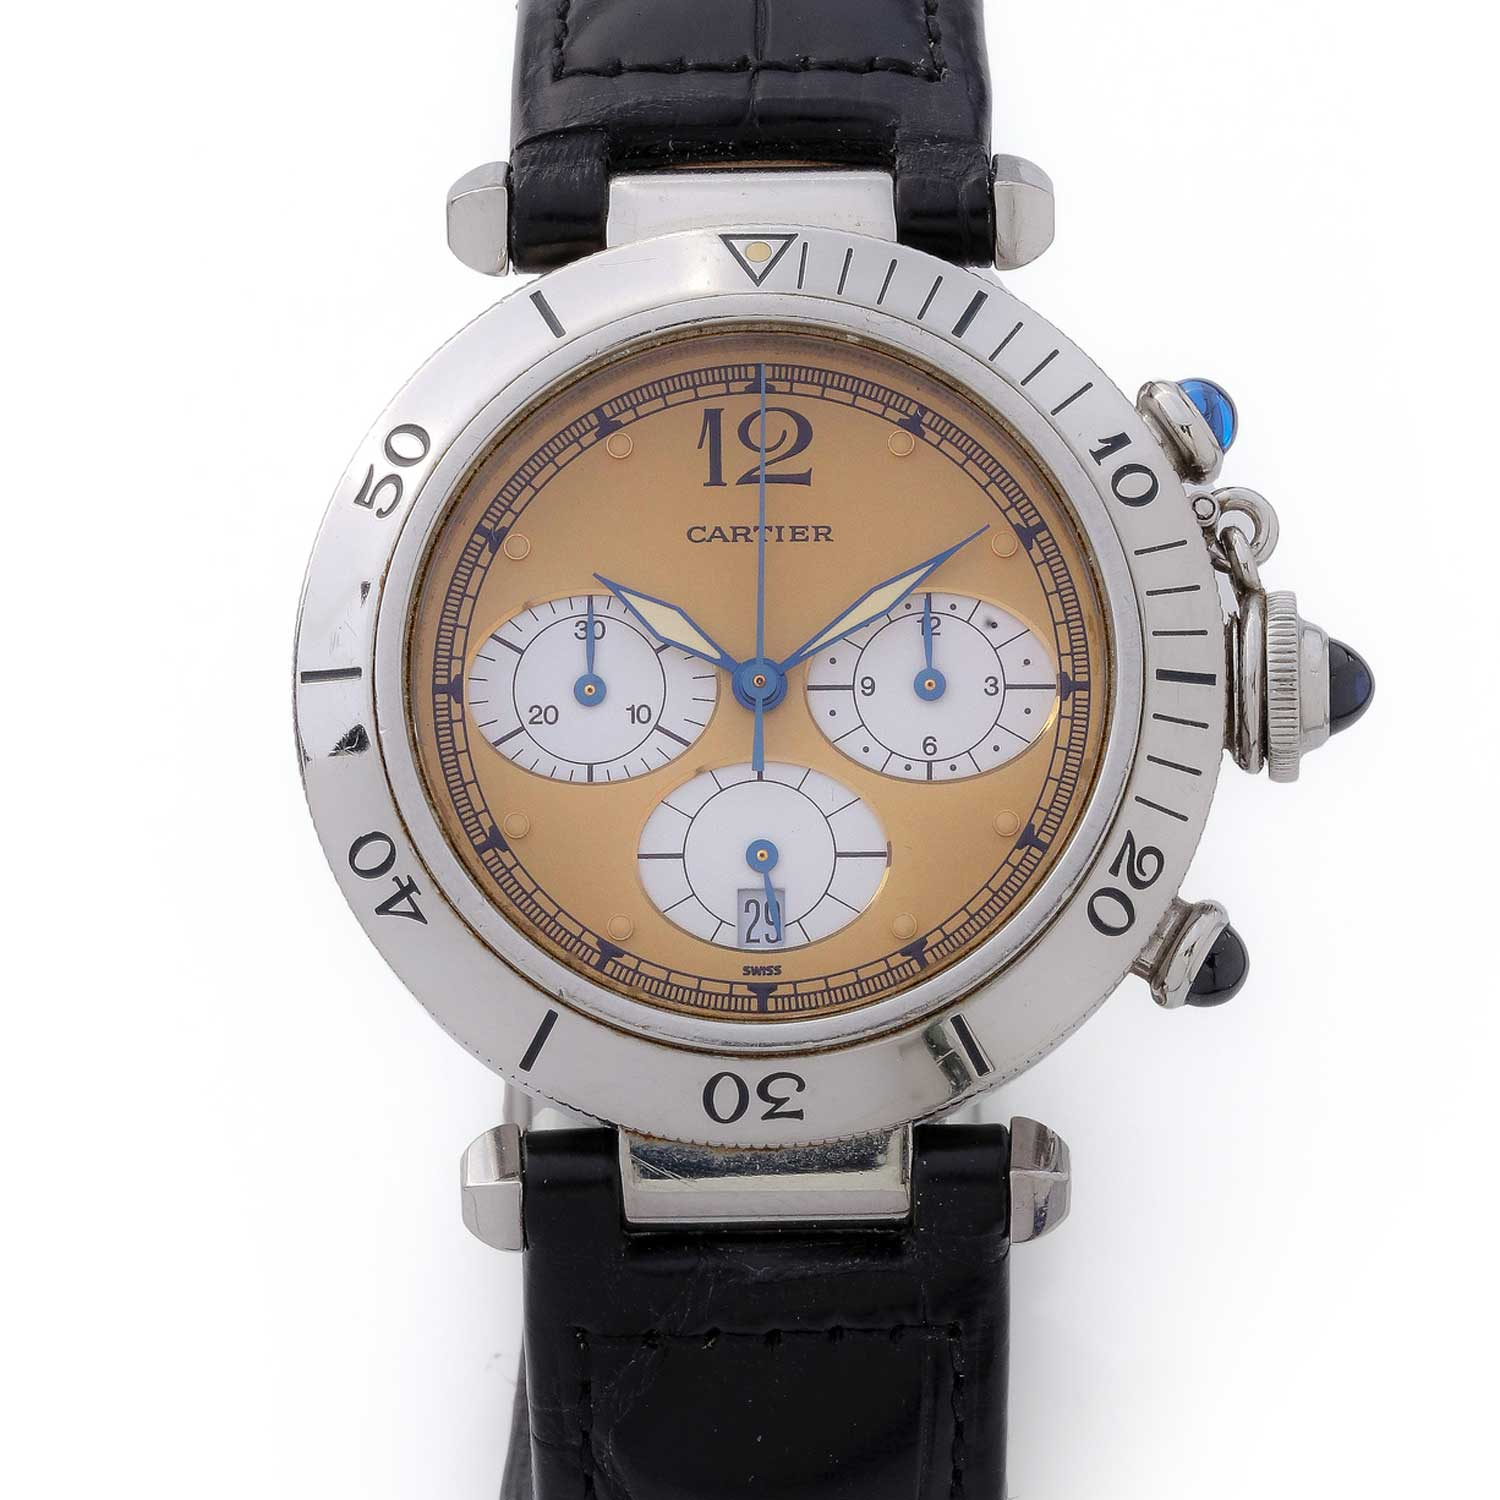 Cartier Pasha Chronograph from the 1980s (Image: Antiquorum)